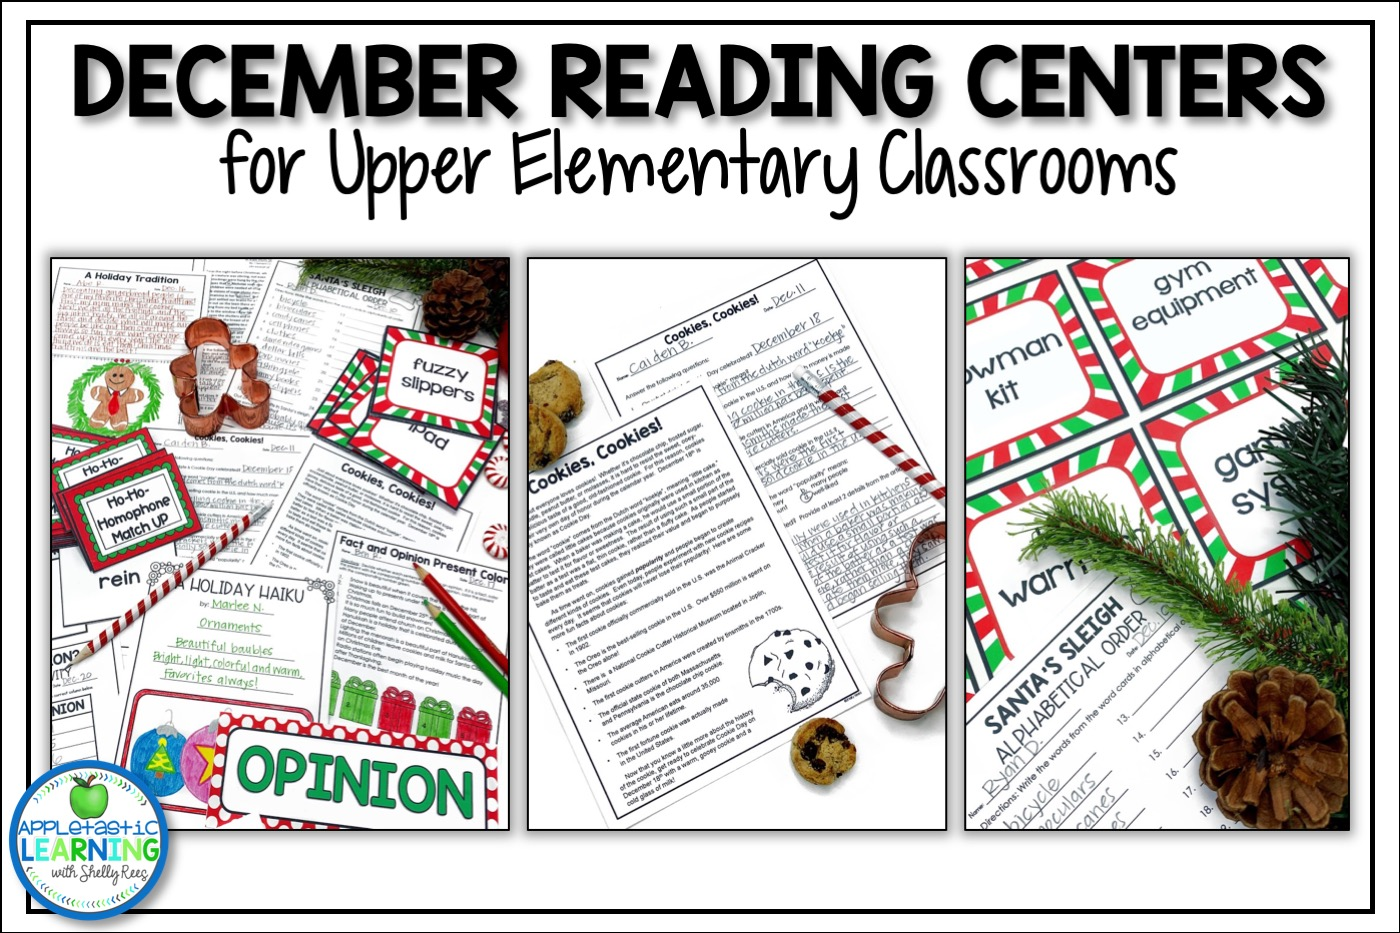 December reading activities for the upper elementary classroom